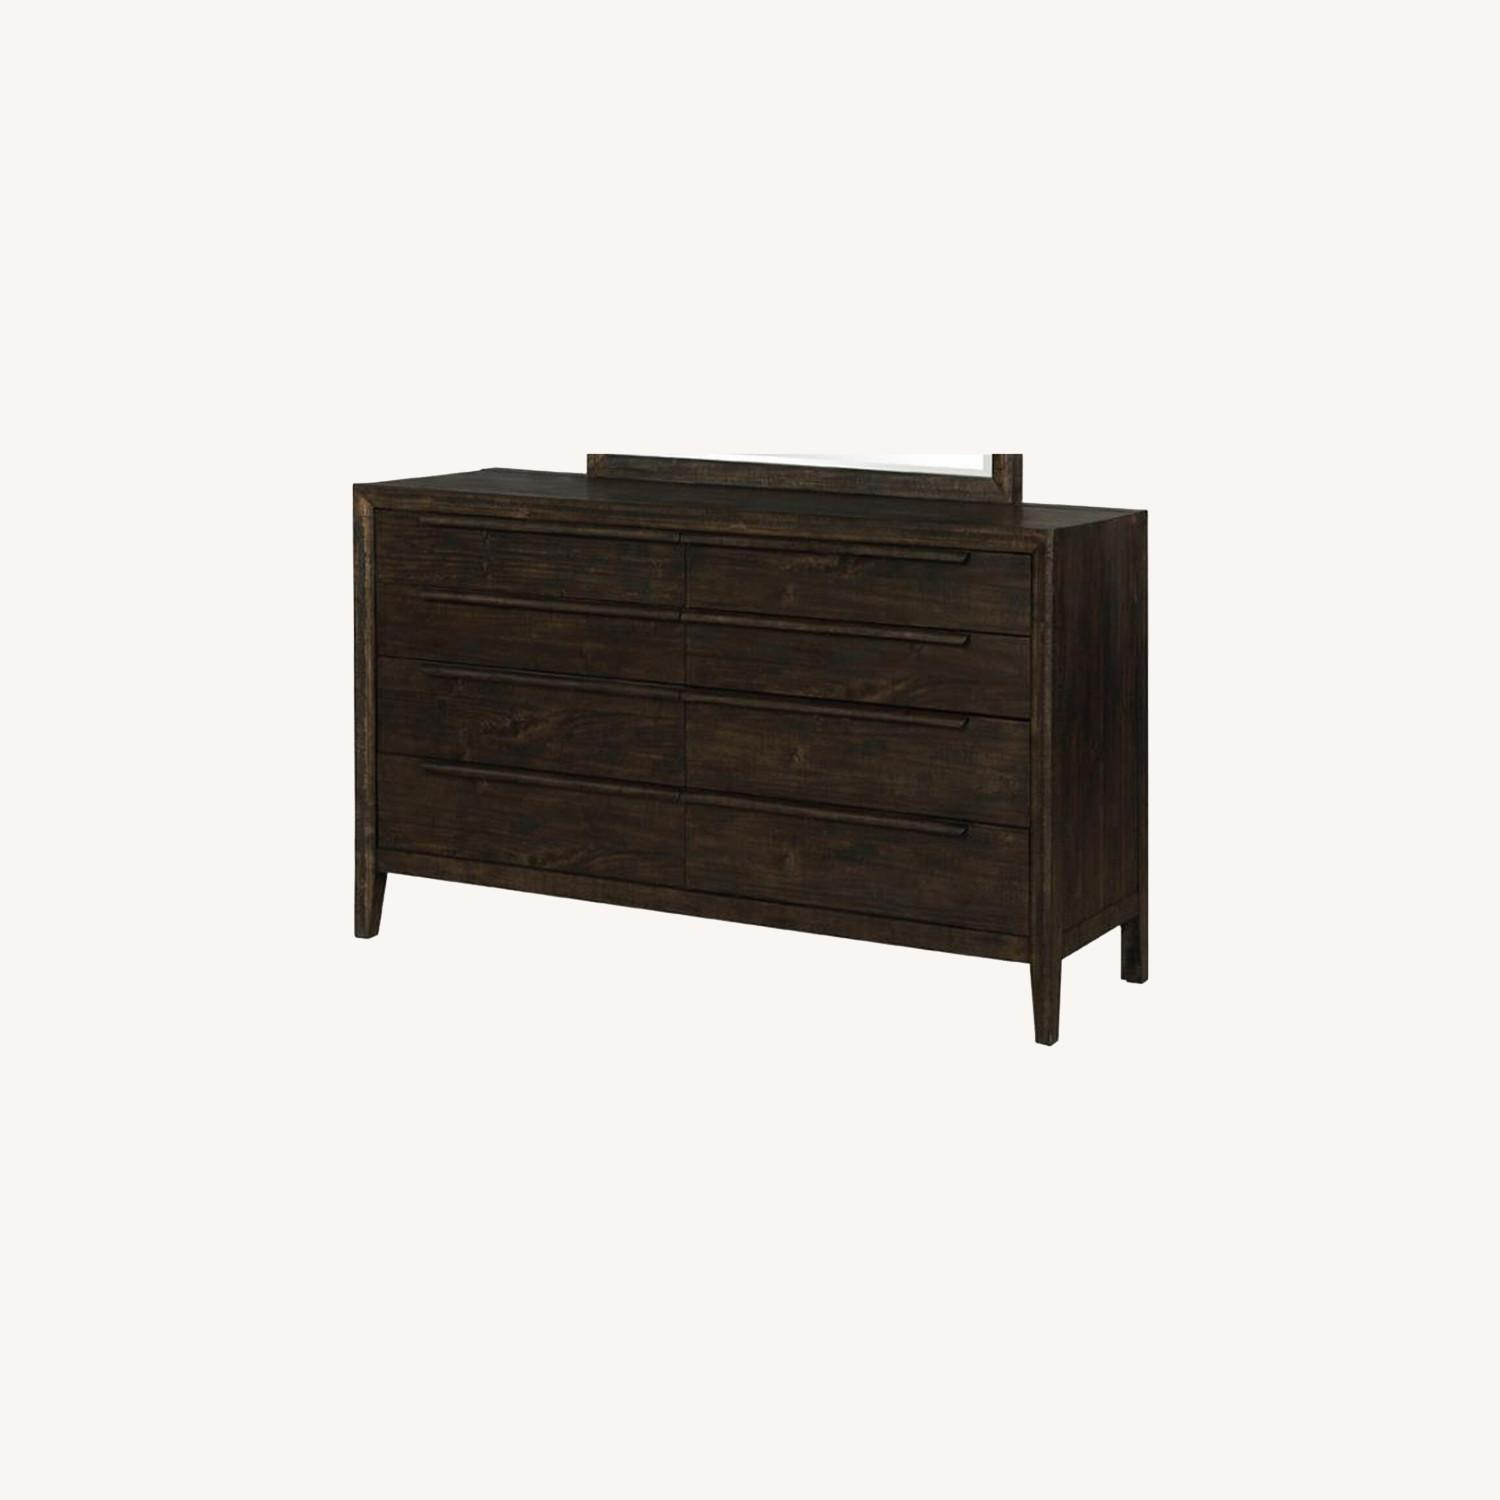 Modern Classic Style Dresser In French Press Wood - image-4